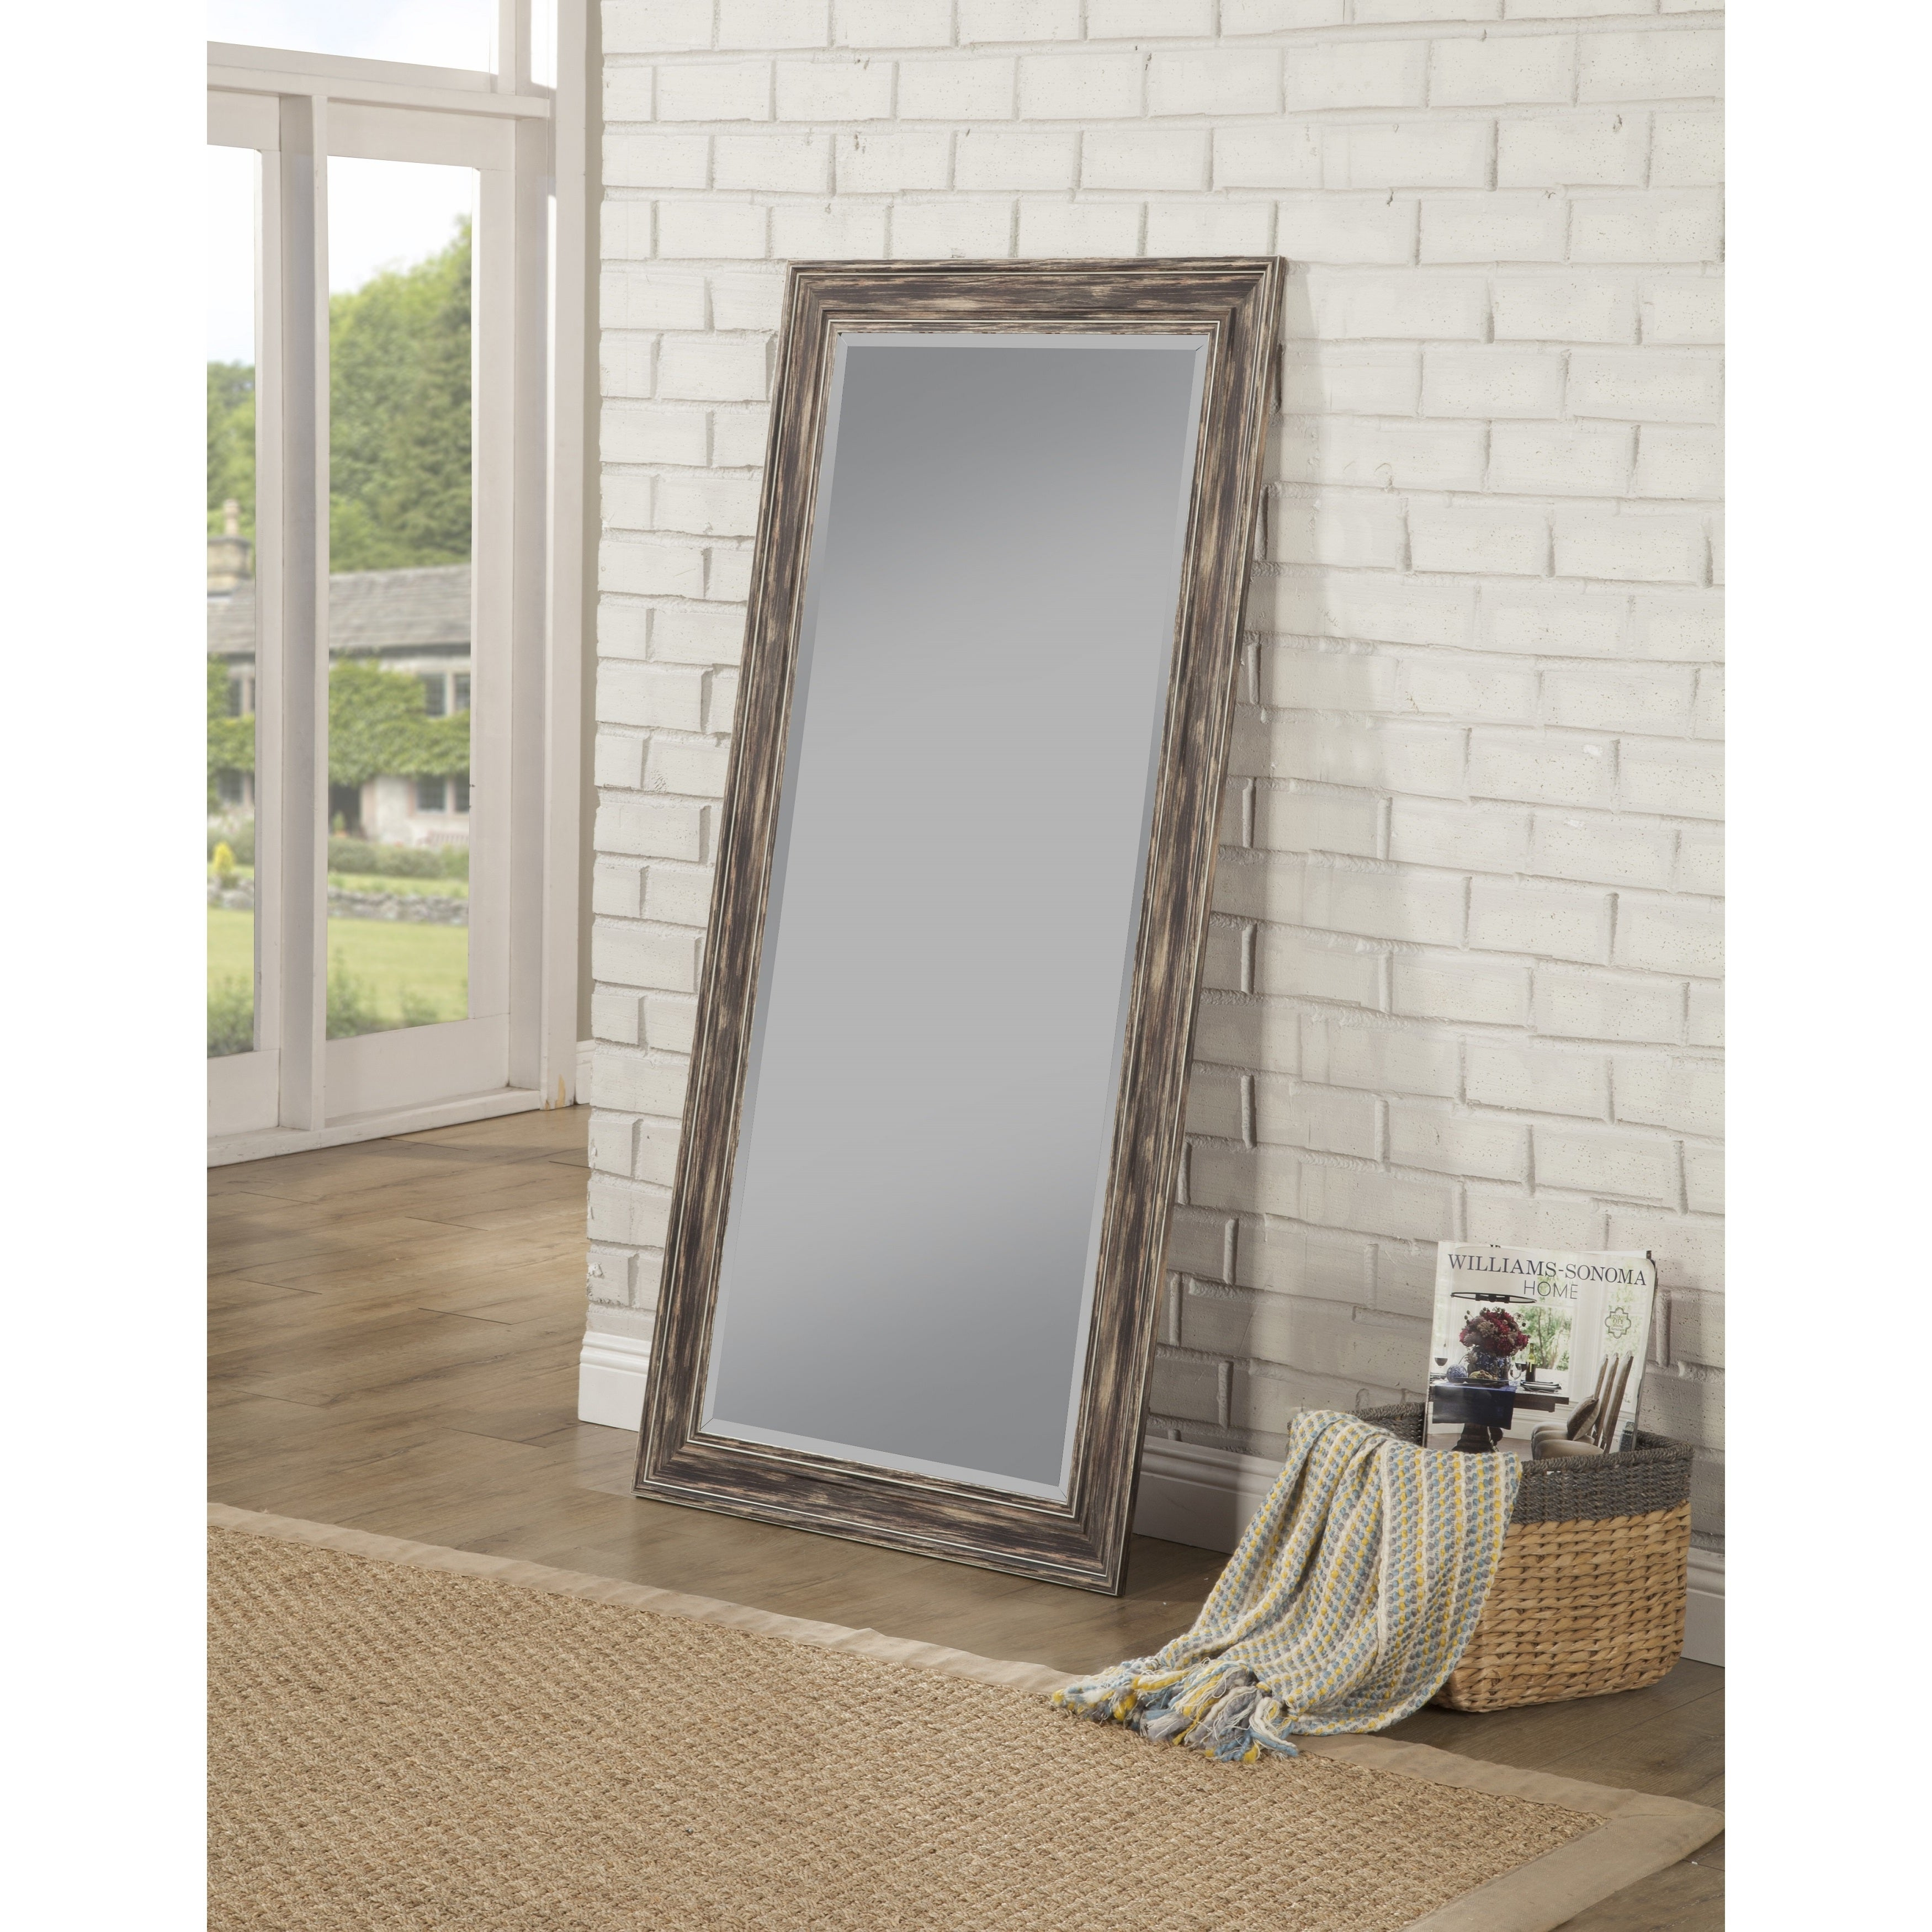 Sandberg Furniture Antique Black Farmhouse Full Length Leaner Mirror – Antique Black – A/n In Handcrafted Farmhouse Full Length Mirrors (View 26 of 30)